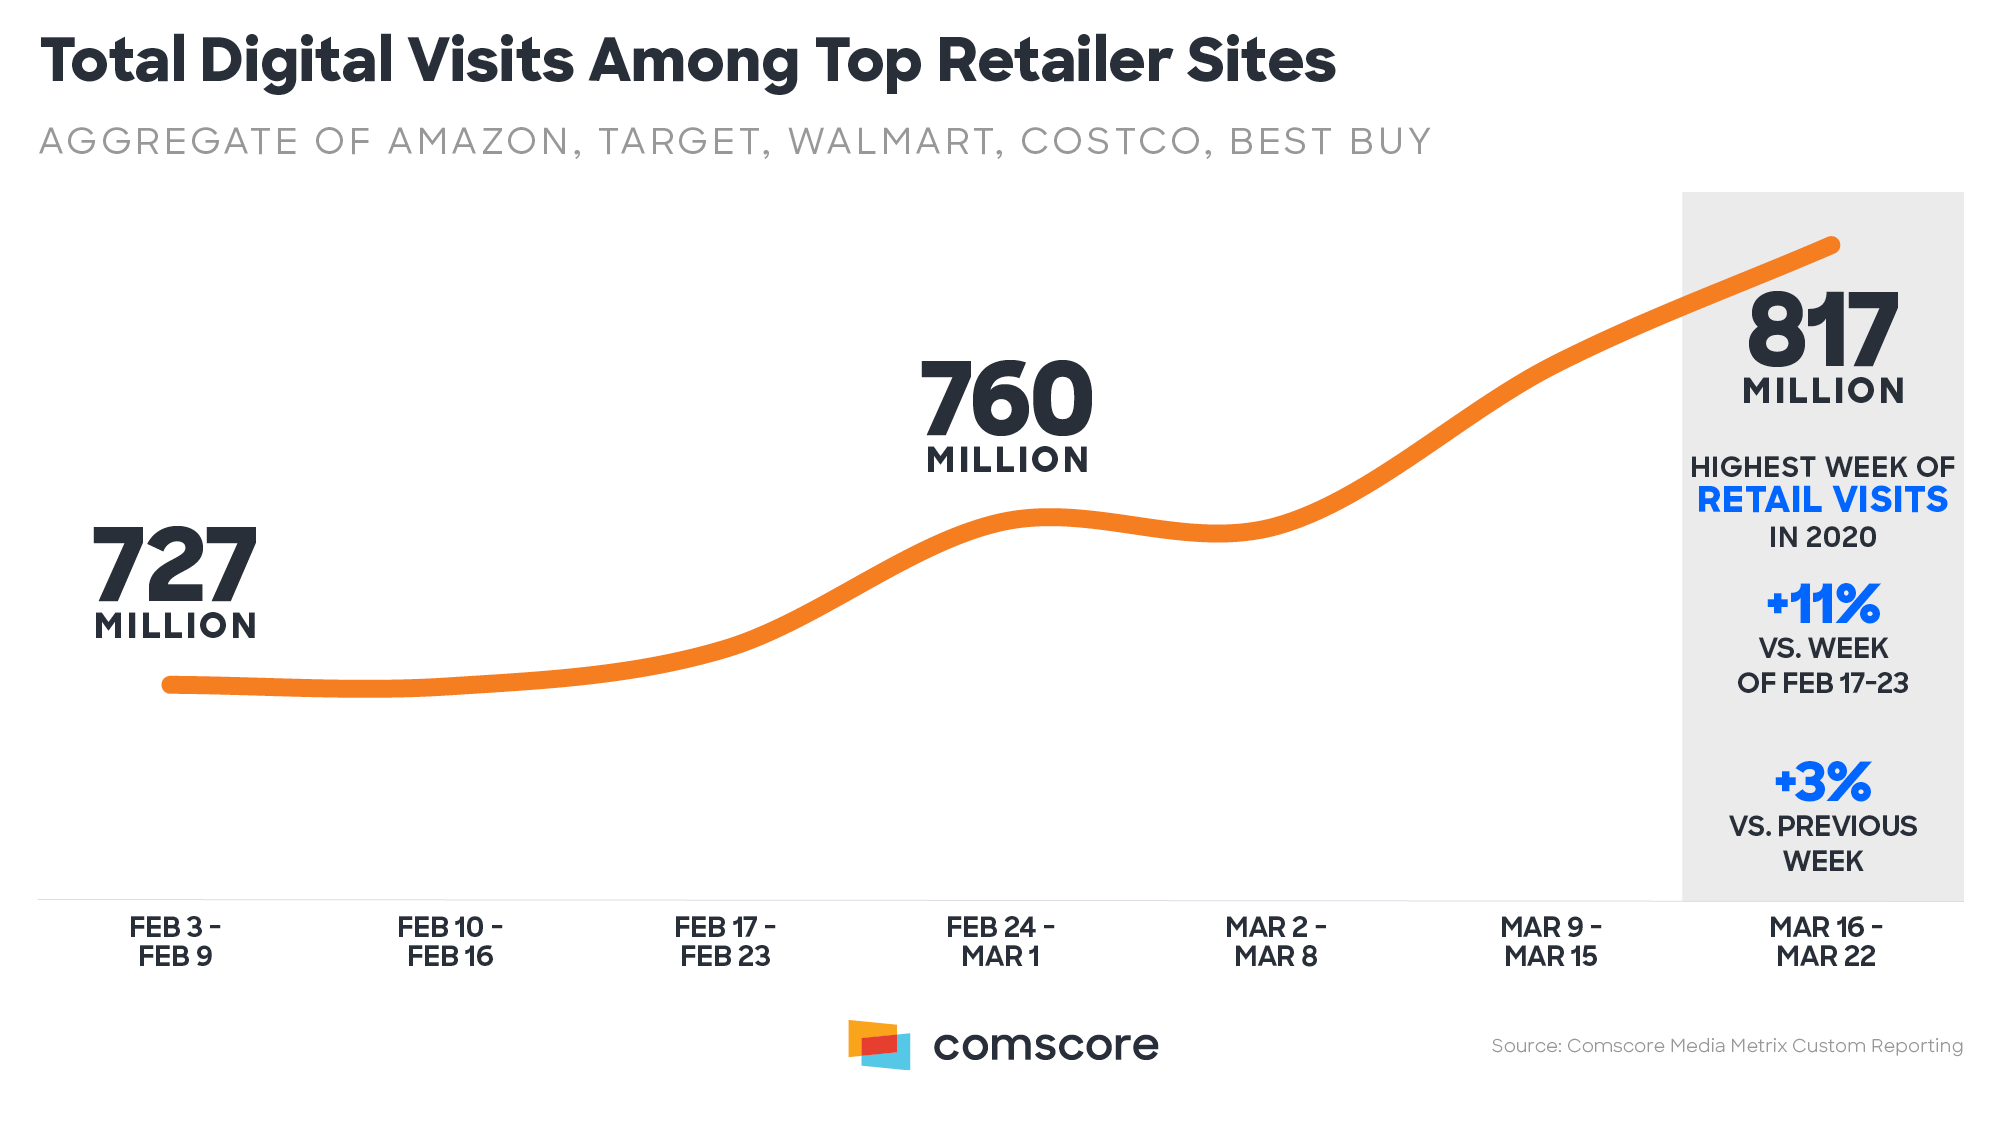 Total Digital Visits Among Top Retailer Sites